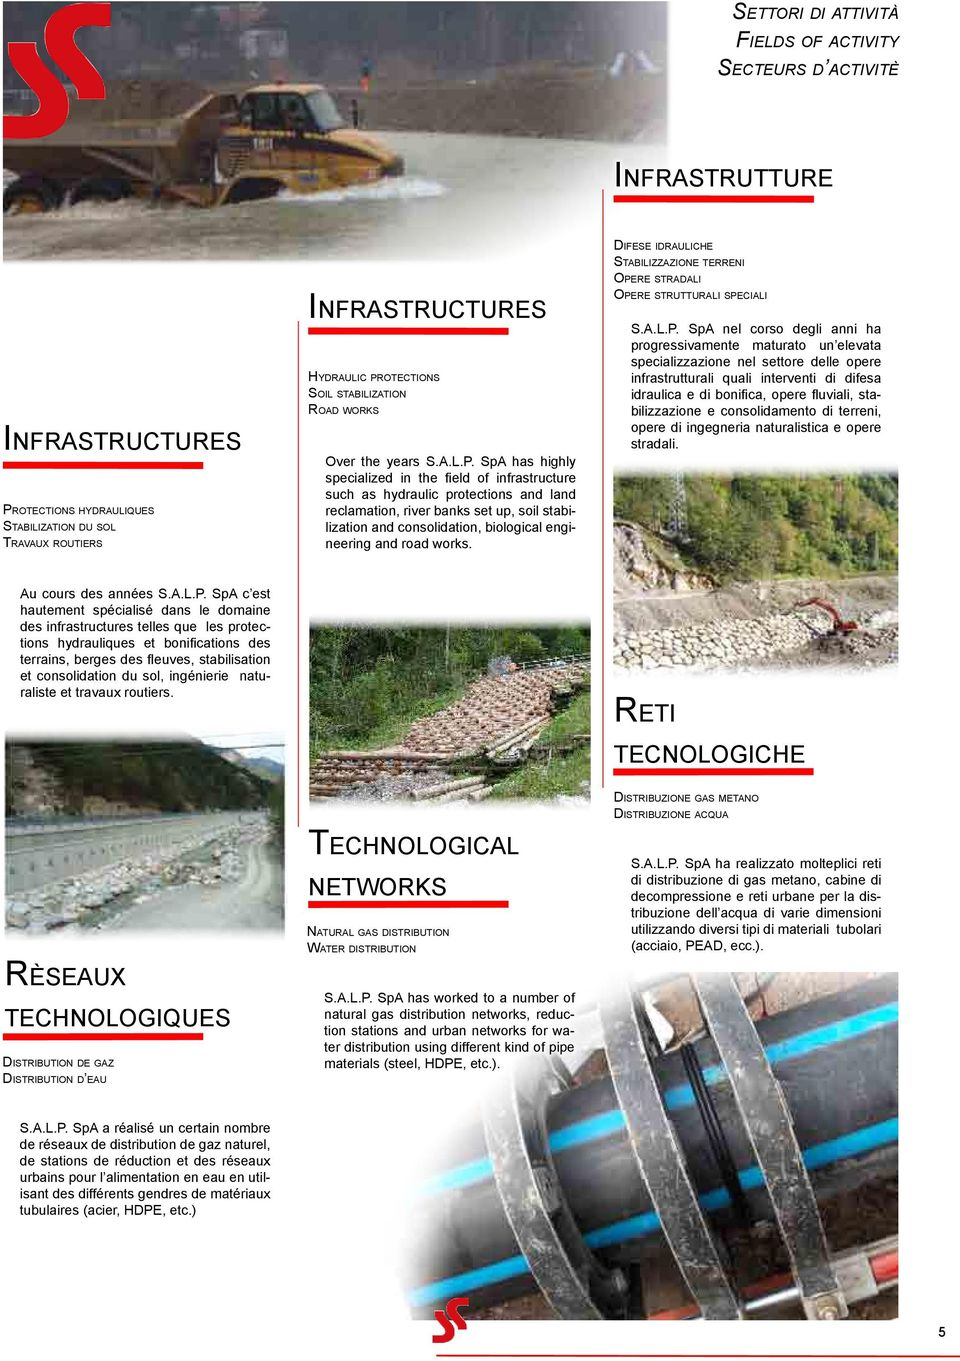 SpA has highly specialized in the field of infrastructure such as hydraulic protections and land reclamation, river banks set up, soil stabilization and consolidation, biological engineering and road